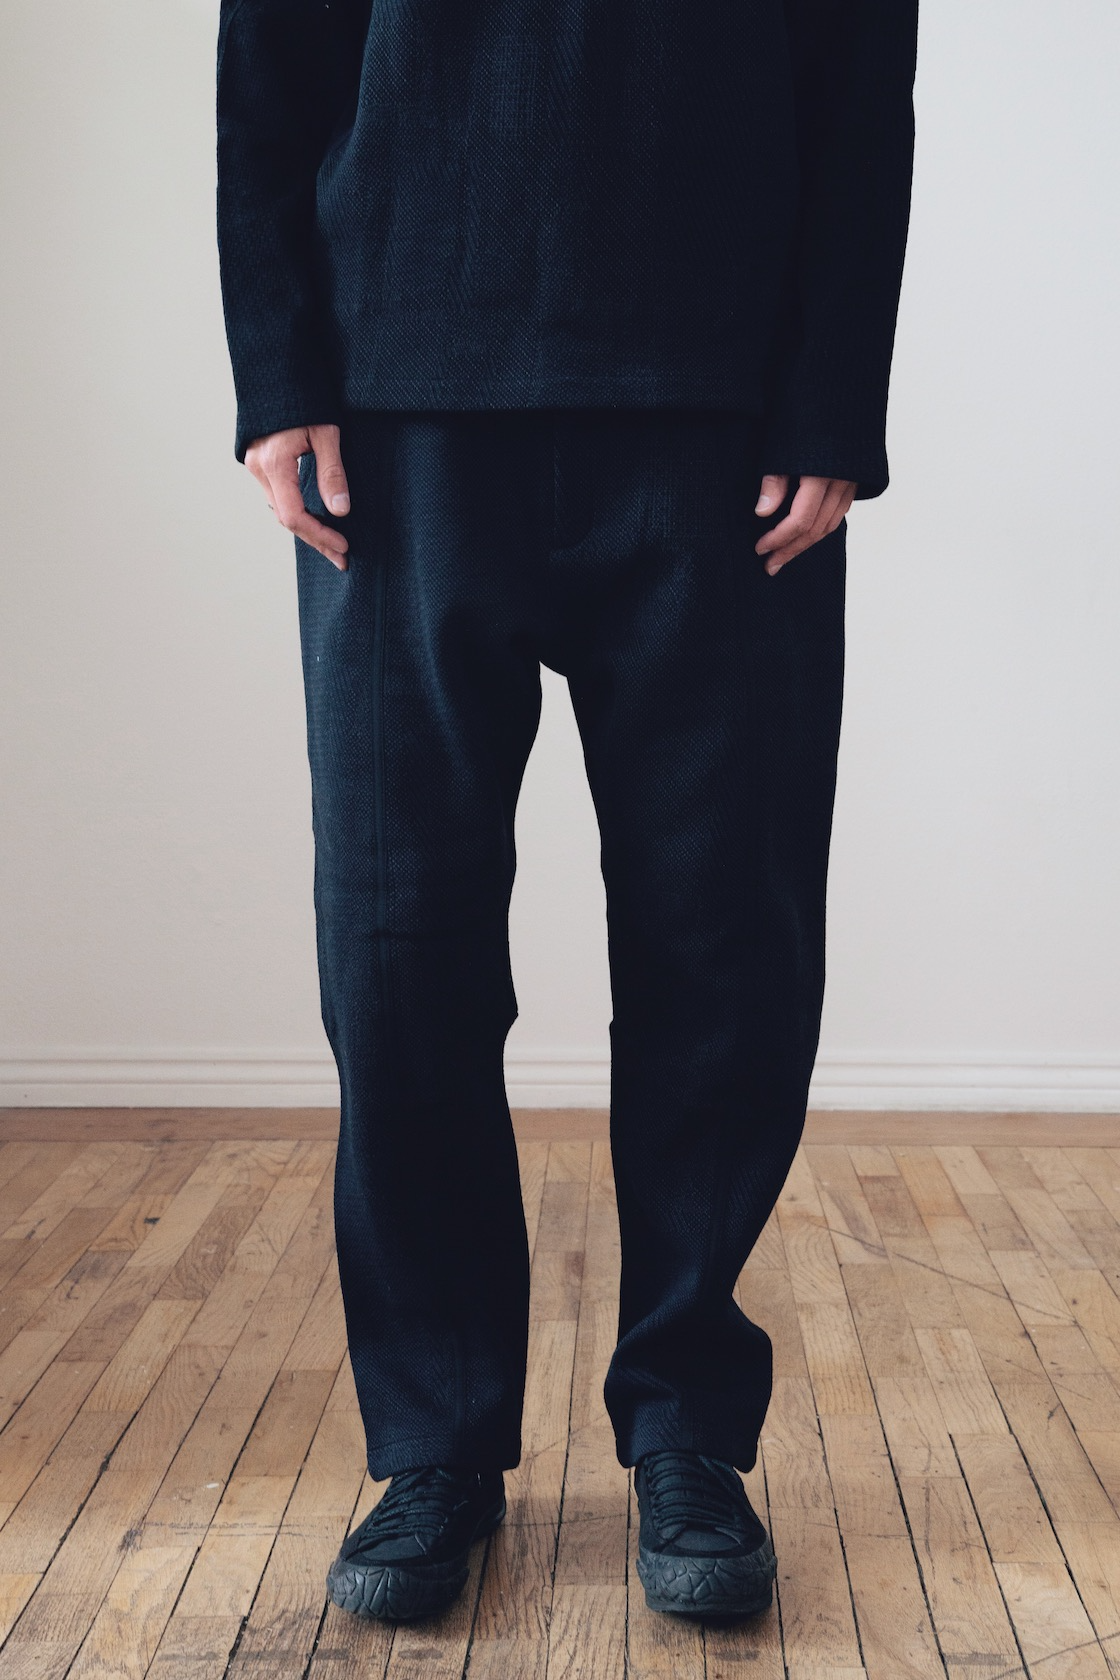 byborre suit jacket, lightweight map sweater and suit pants on body